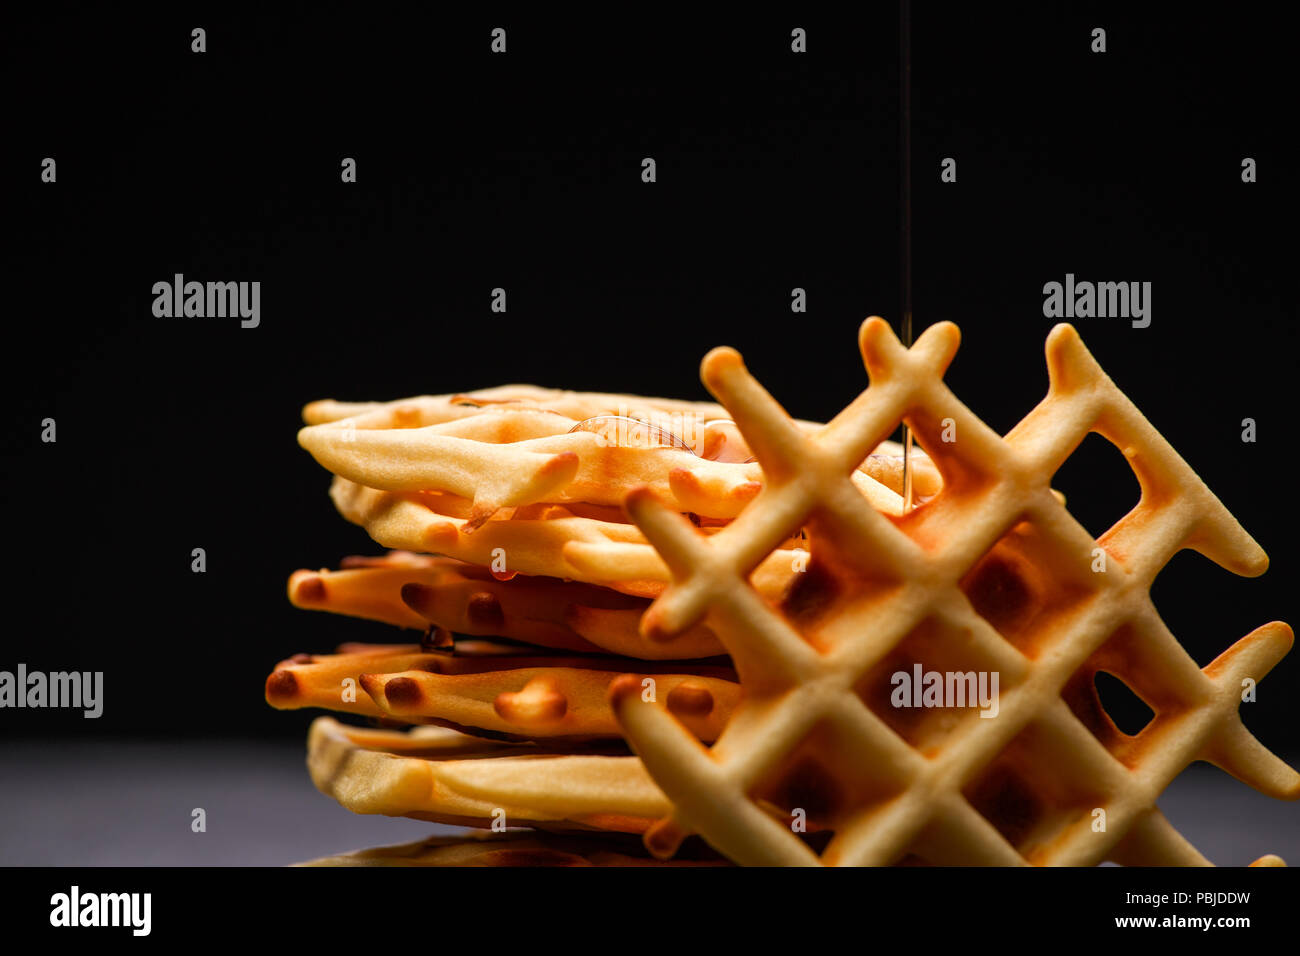 Photo of Viennese wafers on black background - Stock Image